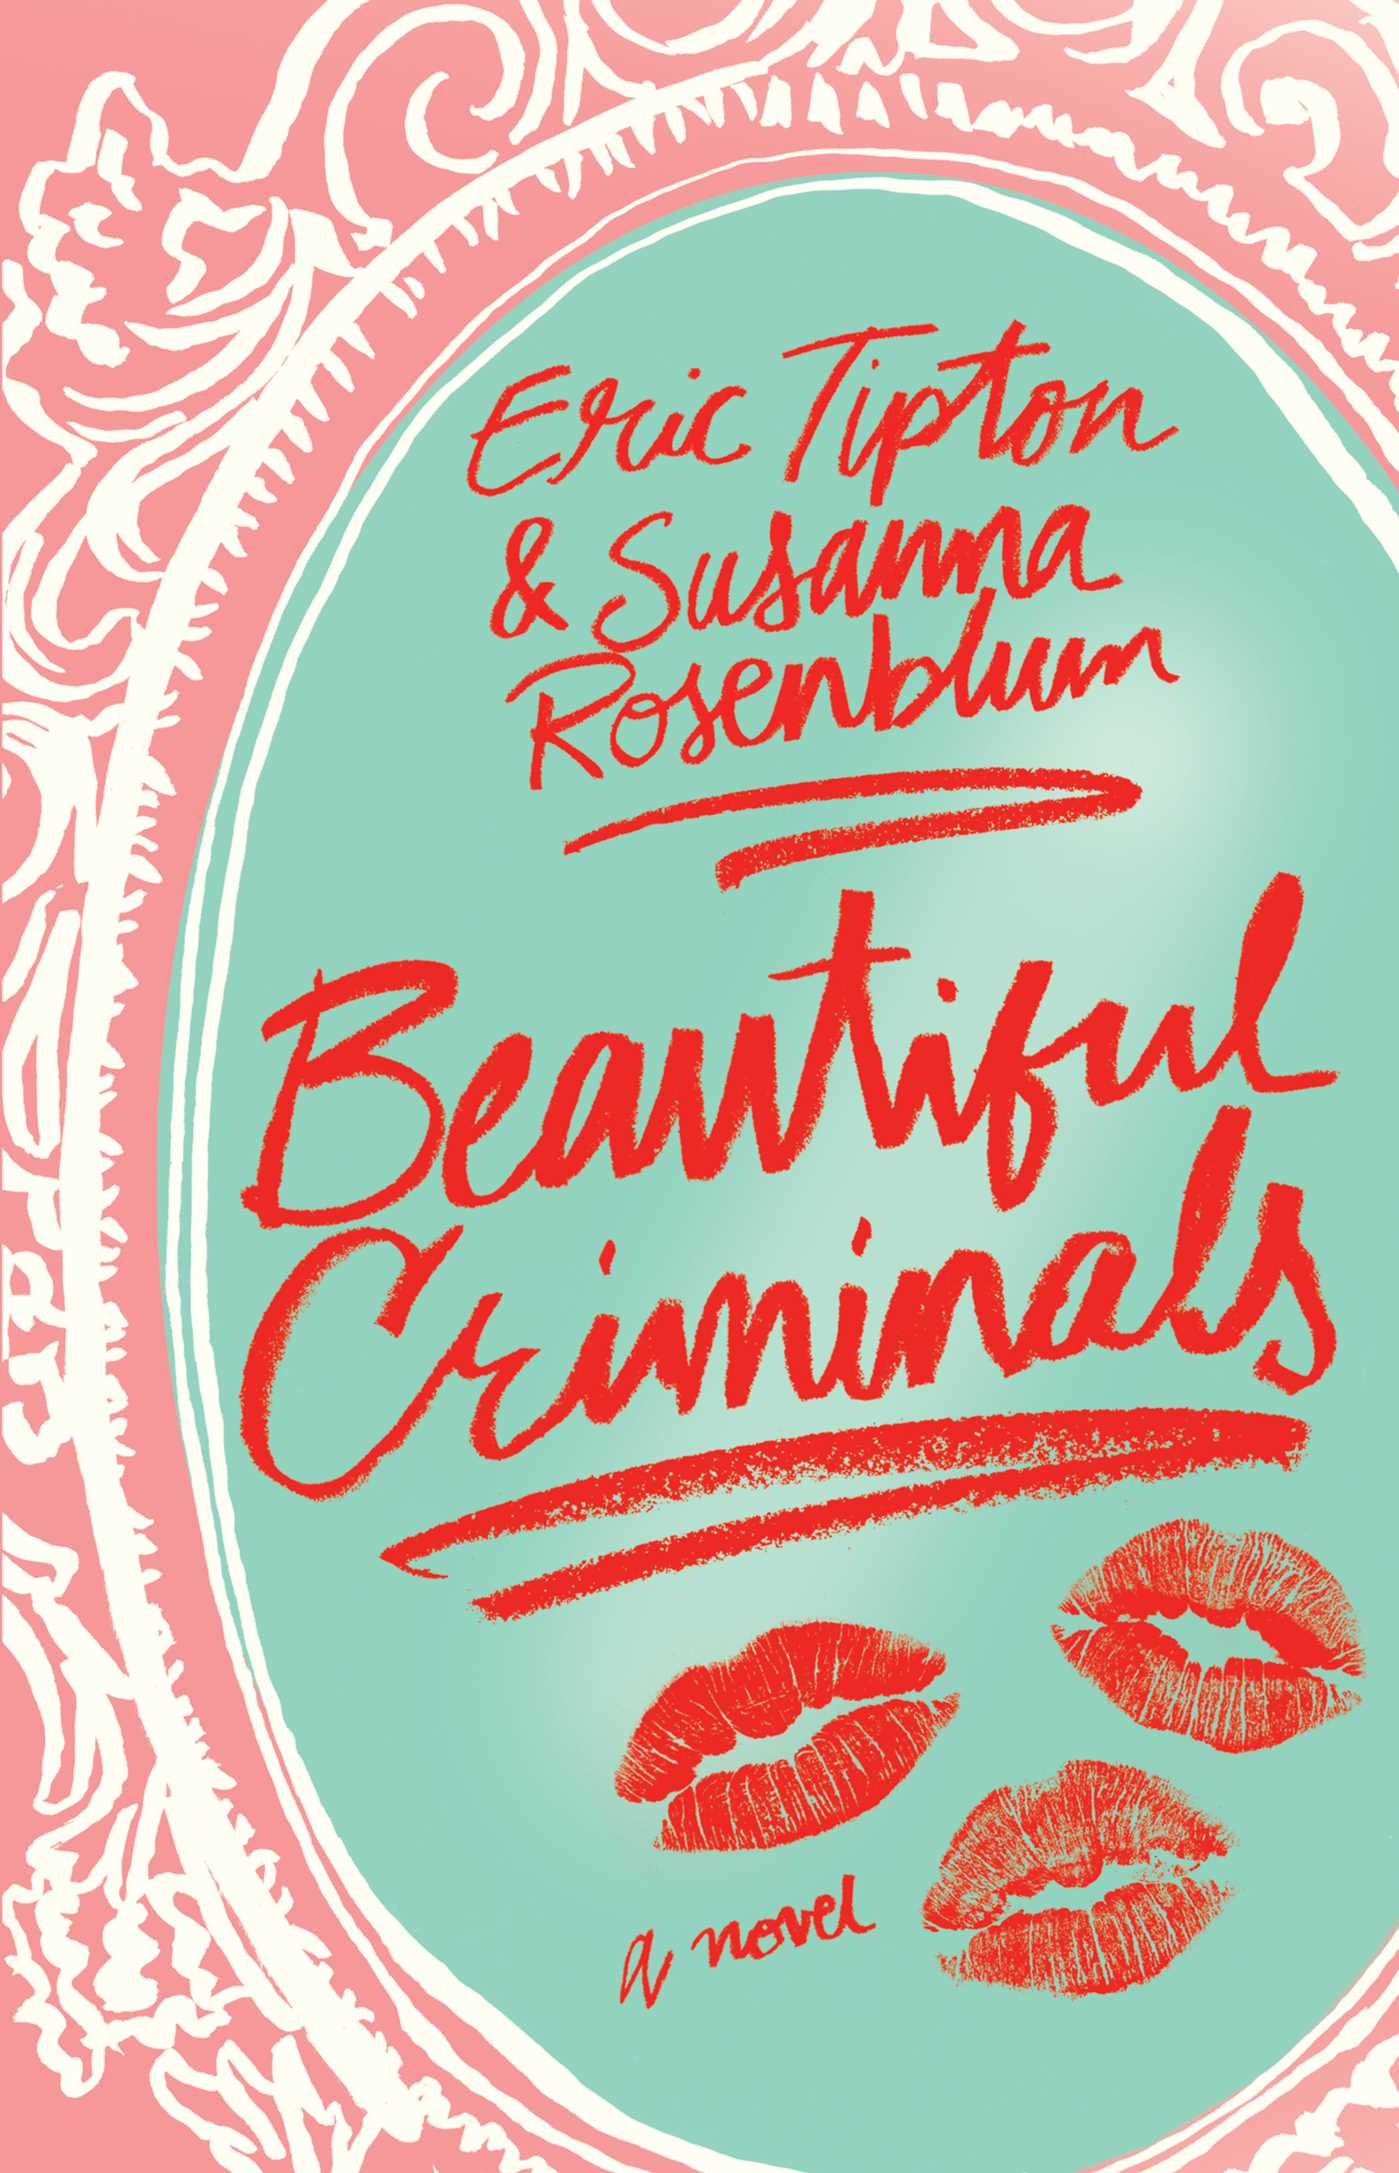 Beautiful Criminals | Book by Eric Tipton, Susanna Rosenblum ...